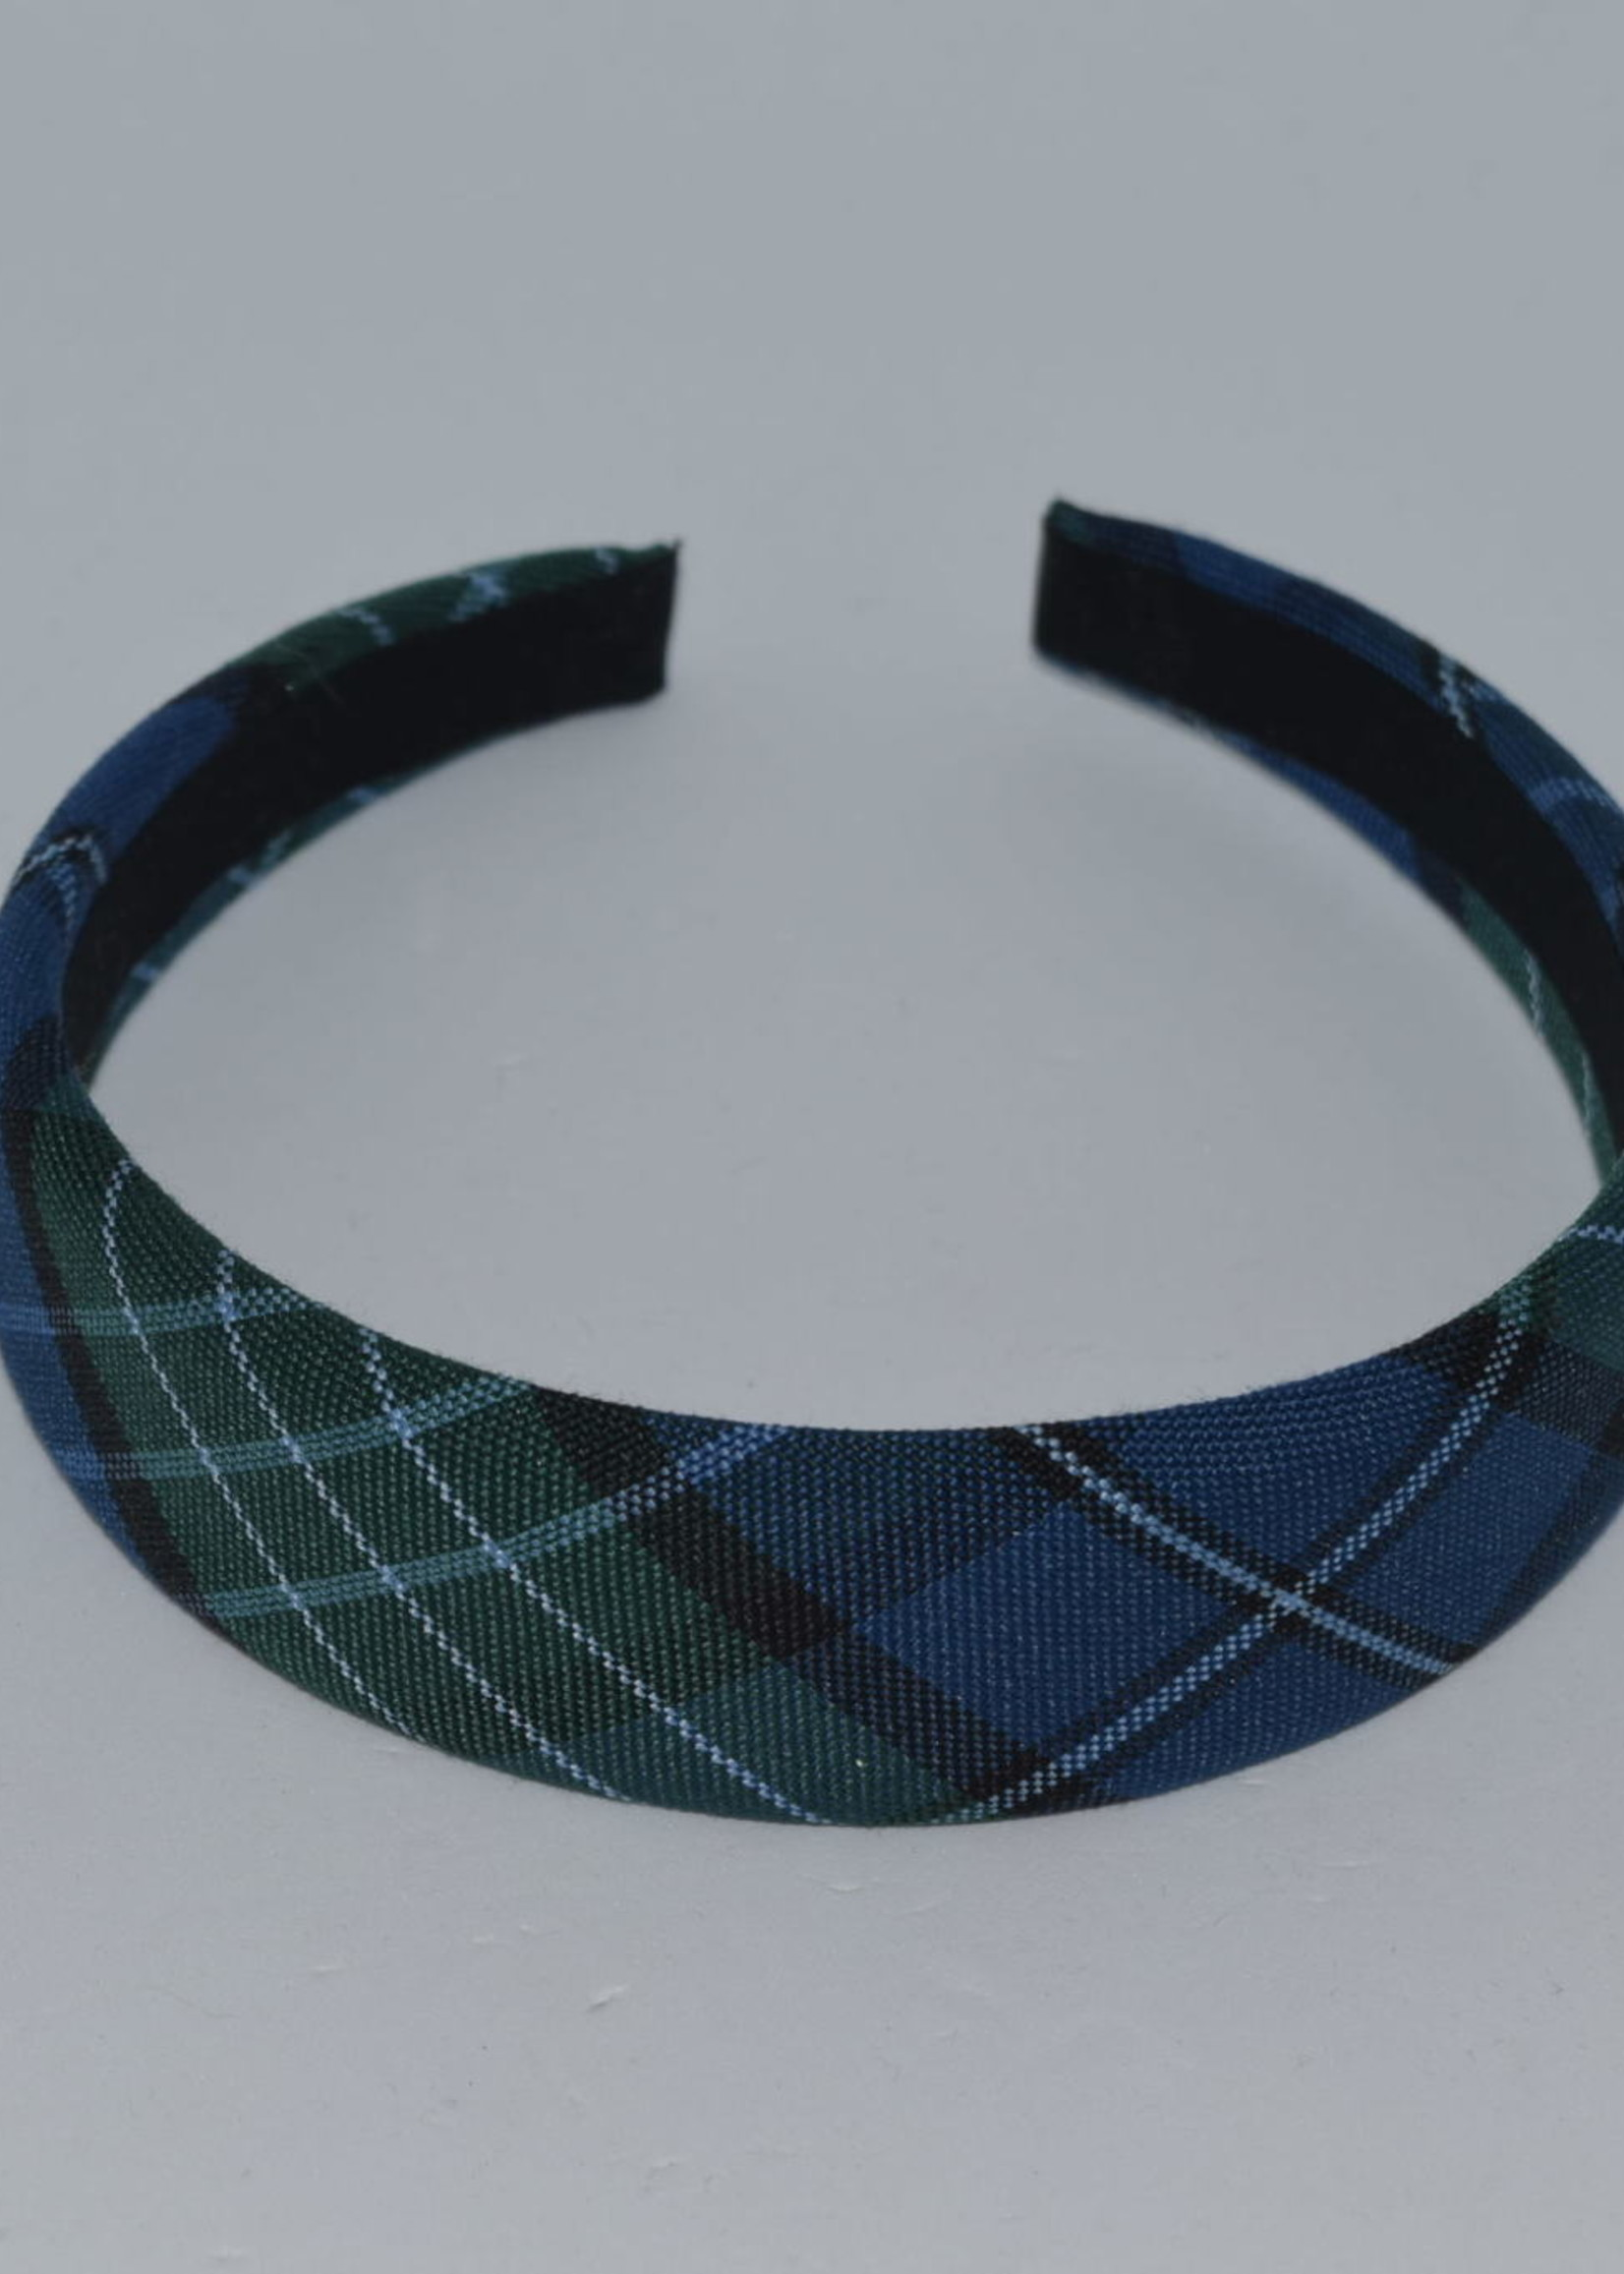 Wide padded headband w/out metal tips P96